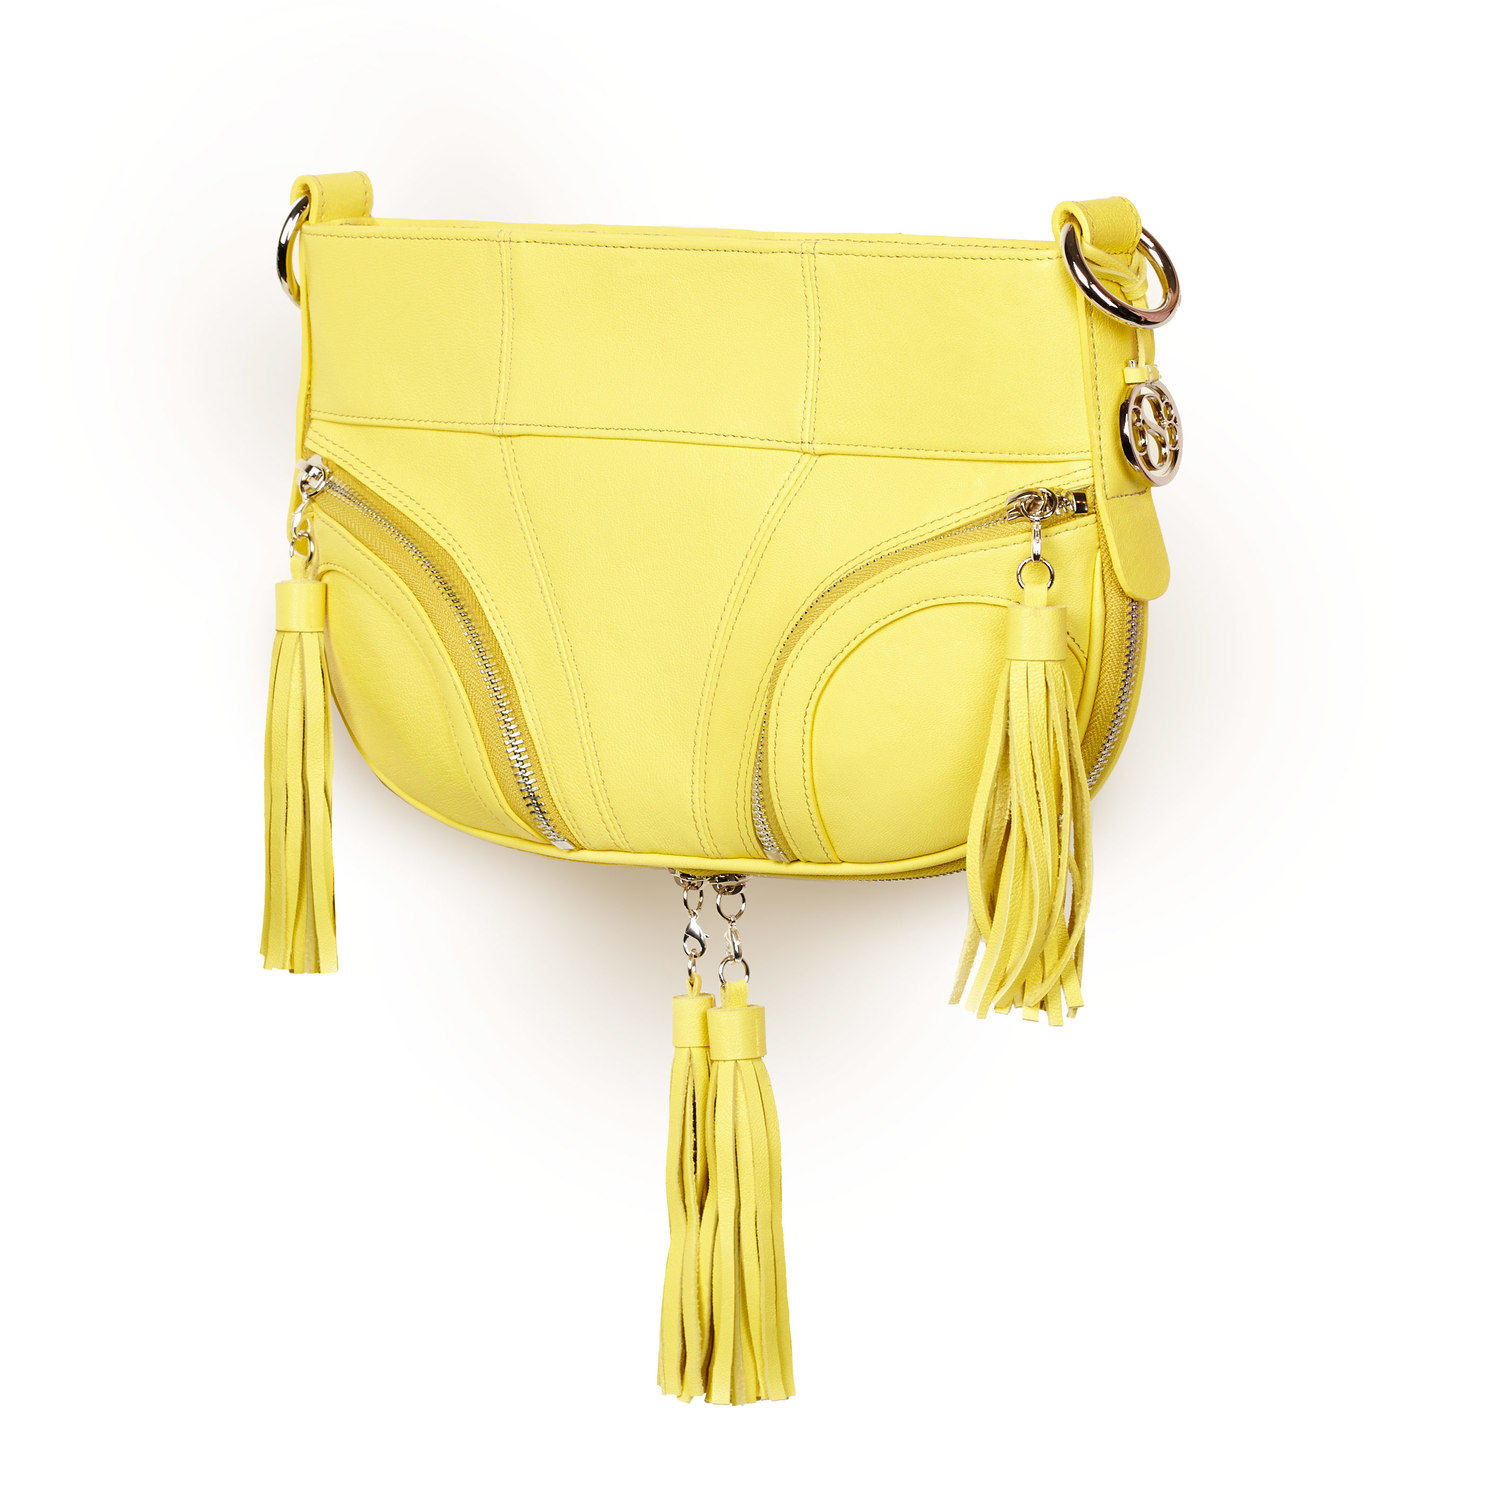 ELECTRIC DAFFODIL - $395.00